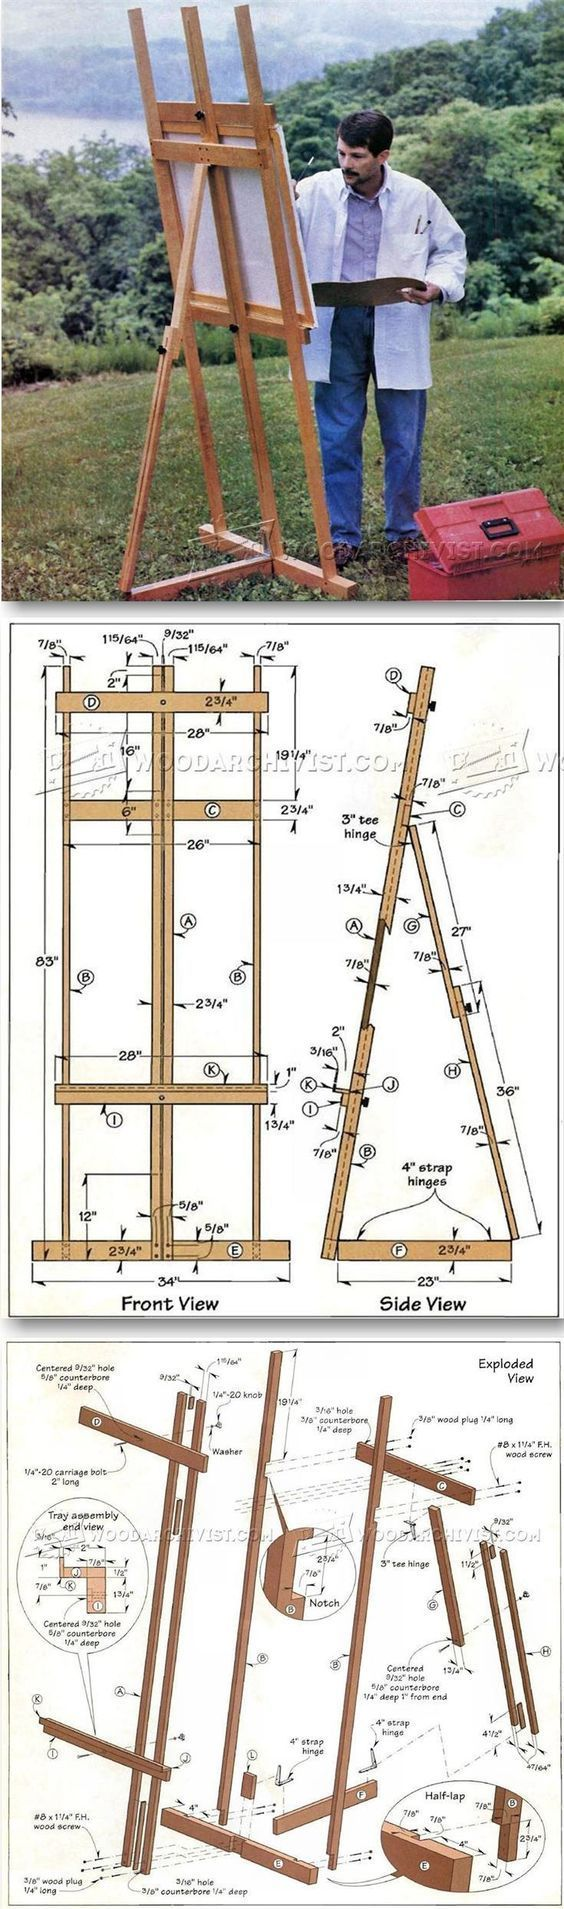 DIY Art Easel - Woodworking Plans and Projects | WoodArchivist.com